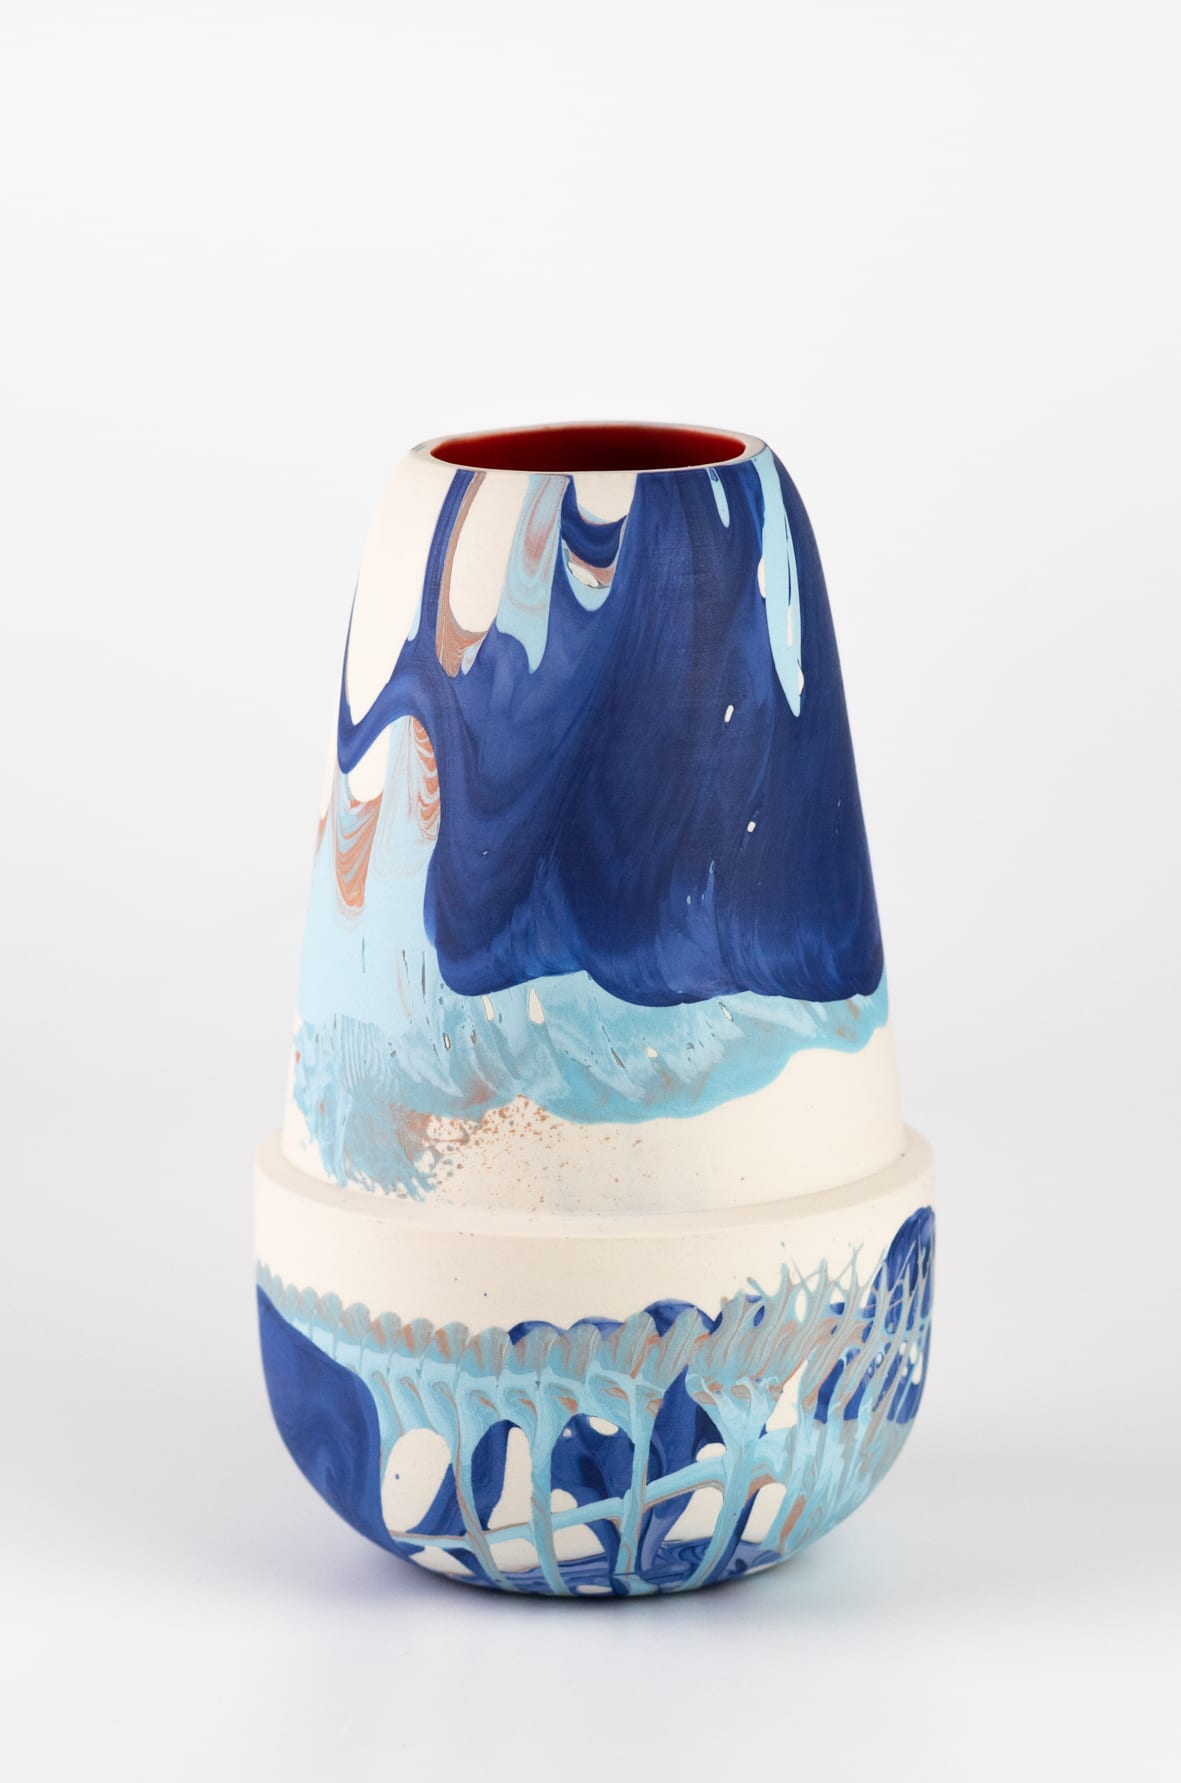 """<span class=""""link fancybox-details-link""""><a href=""""/artists/219-james-pegg/works/6575-james-pegg-achladi-vase-2019/"""">View Detail Page</a></span><div class=""""artist""""><strong>James Pegg</strong></div> <div class=""""title""""><em>Achladi Vase</em>, 2019</div> <div class=""""medium"""">action-cast stained porcelain with glazed interior</div><div class=""""price"""">£180.00</div><div class=""""copyright_line"""">OwnArt: £ 18 x 10 months, 0% APR</div>"""